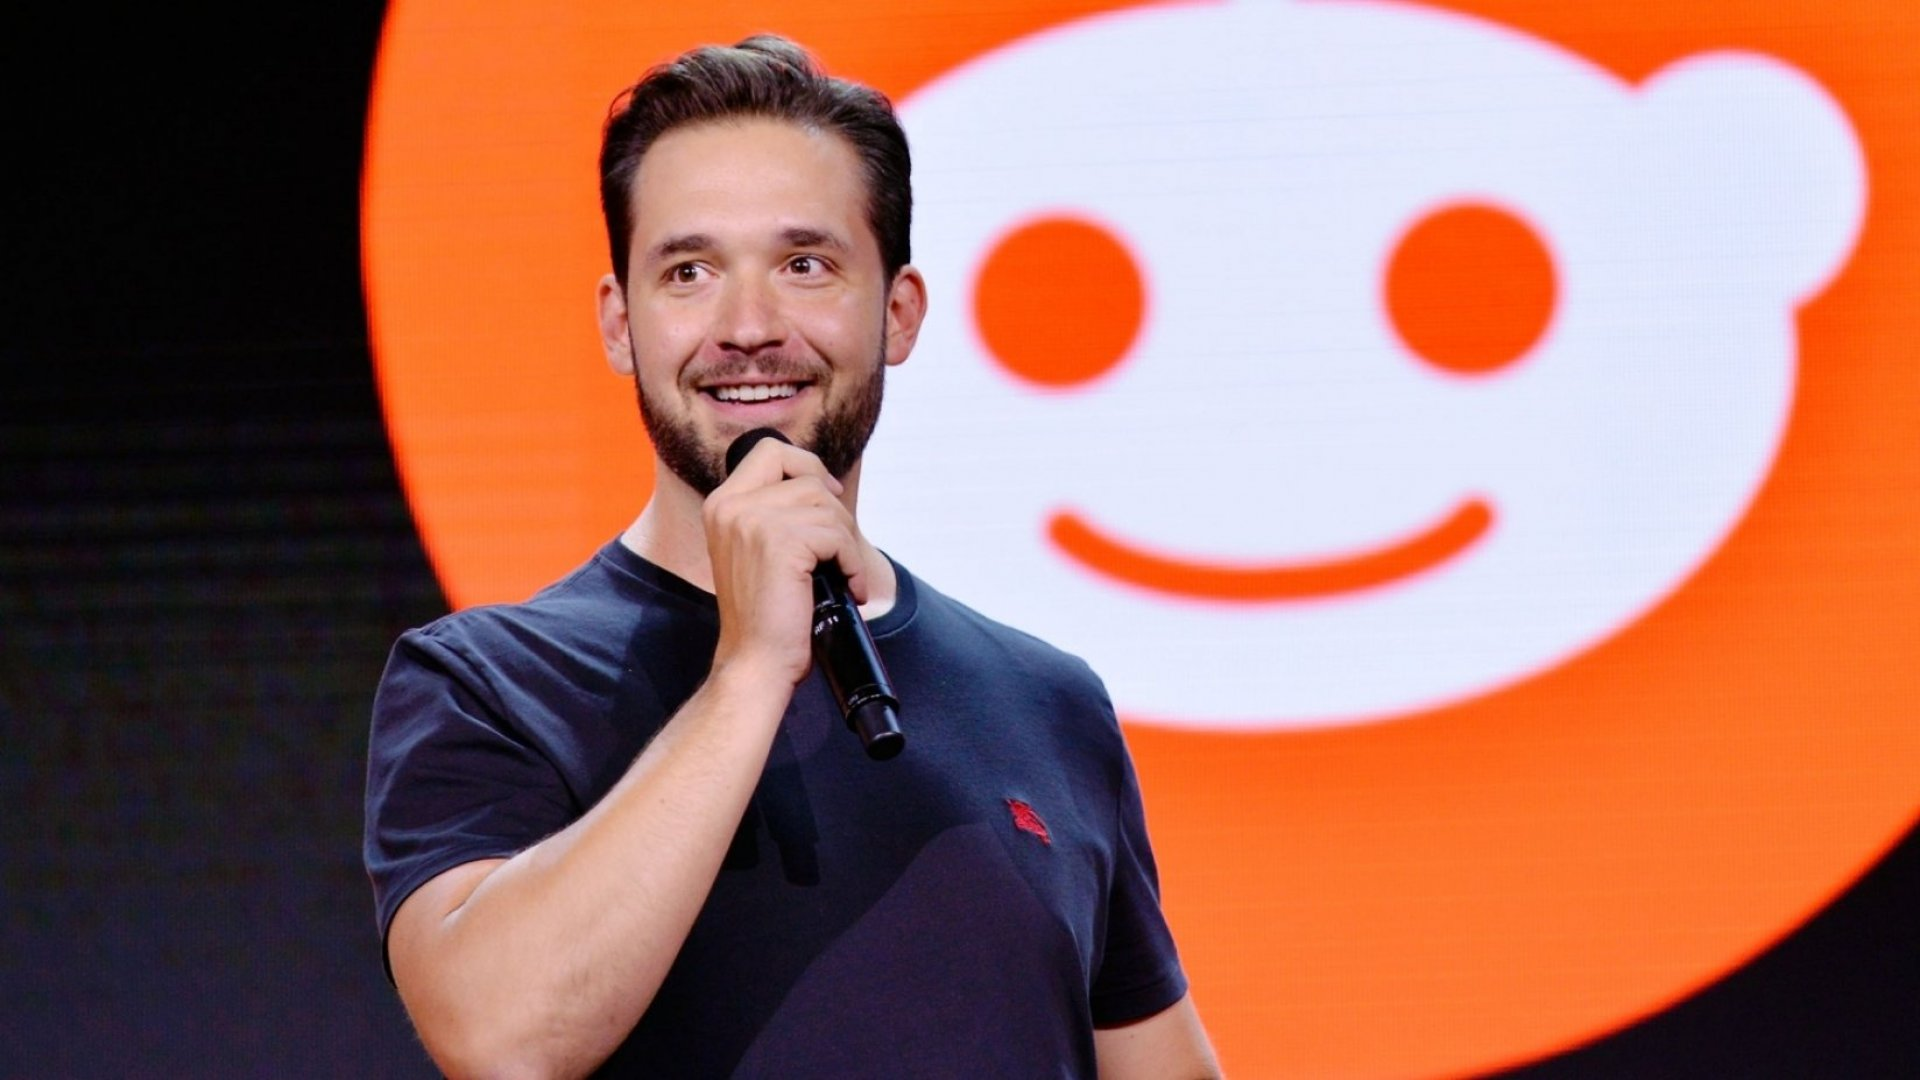 Why Reddit Co-Founder Alexis Ohanian Lives by This 3-Word Mantra (and You Should Too) | Inc.com